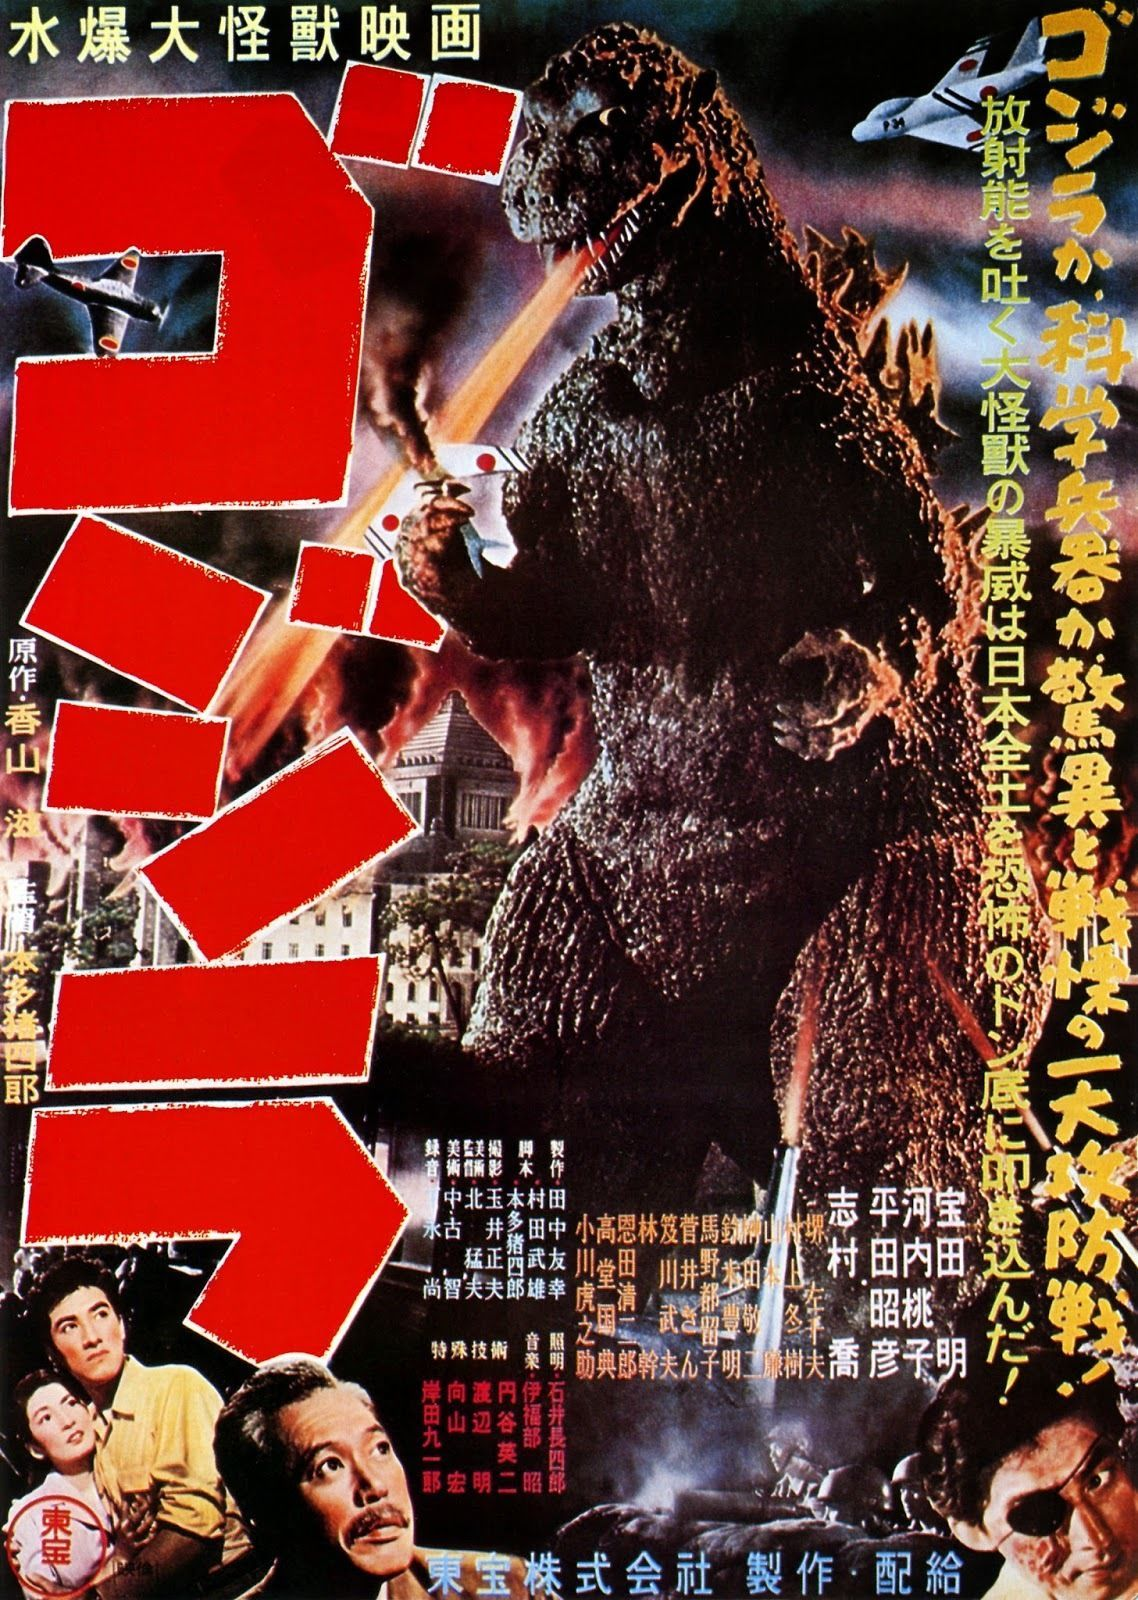 Framed Retro Movie Poster Japanese Gojira A K A Godzilla 1954 Replica Print Ebay Home Garden Japanese Movie Poster Horror Movie Posters Japanese Poster